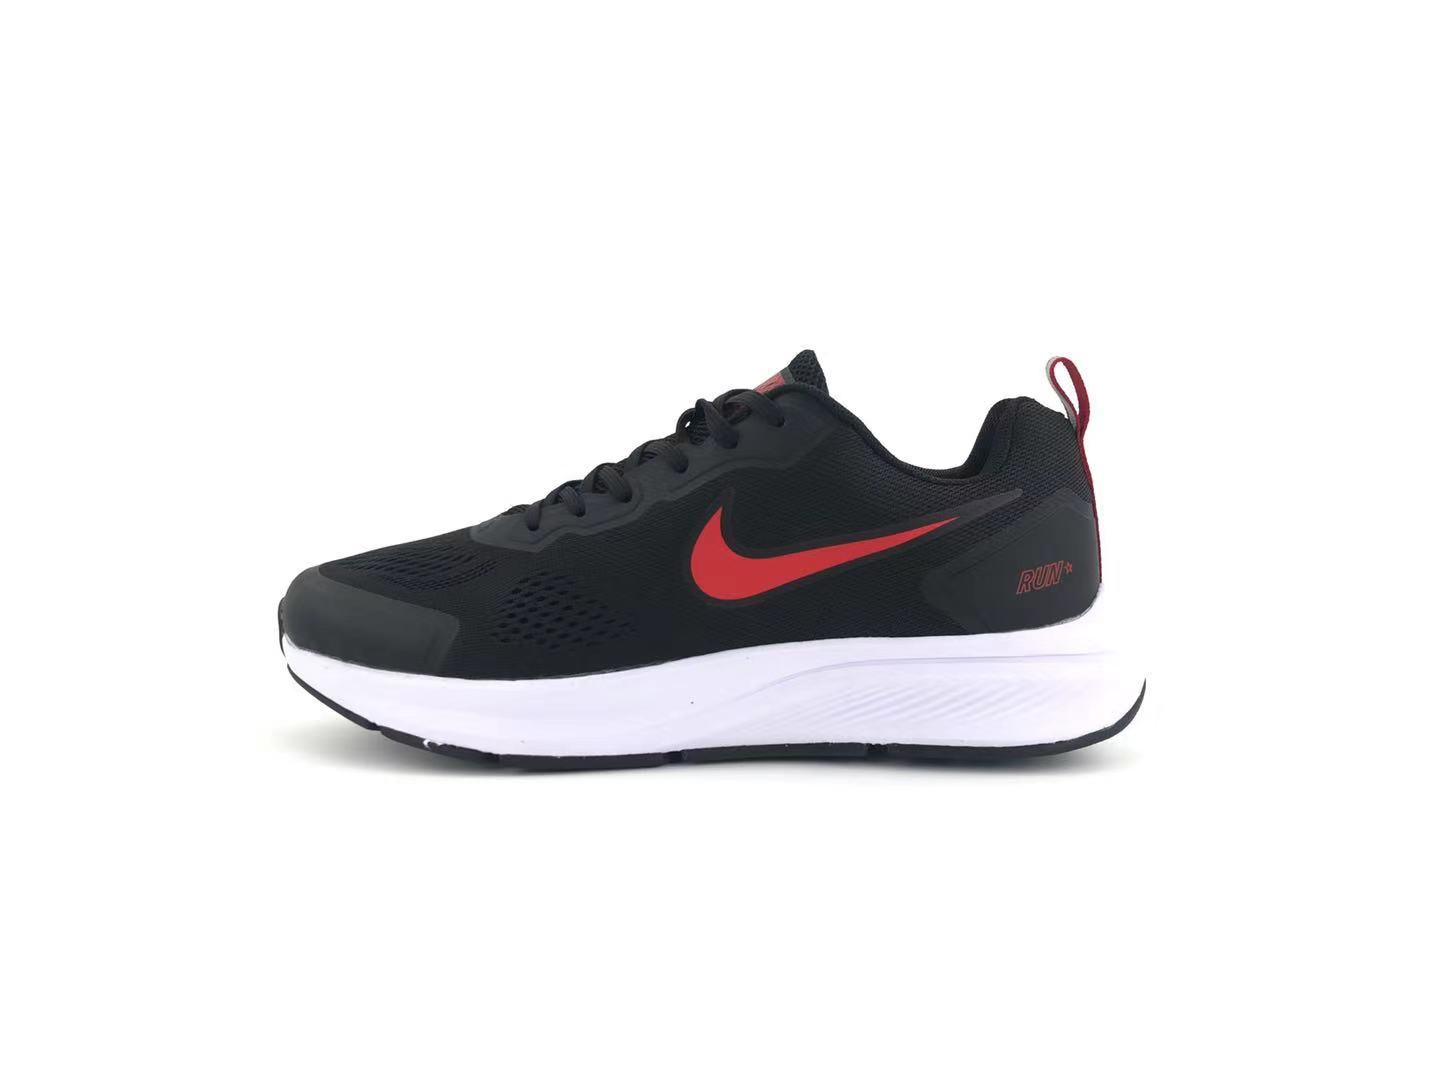 Nike Air Zoom 27 black and red running shoes Left